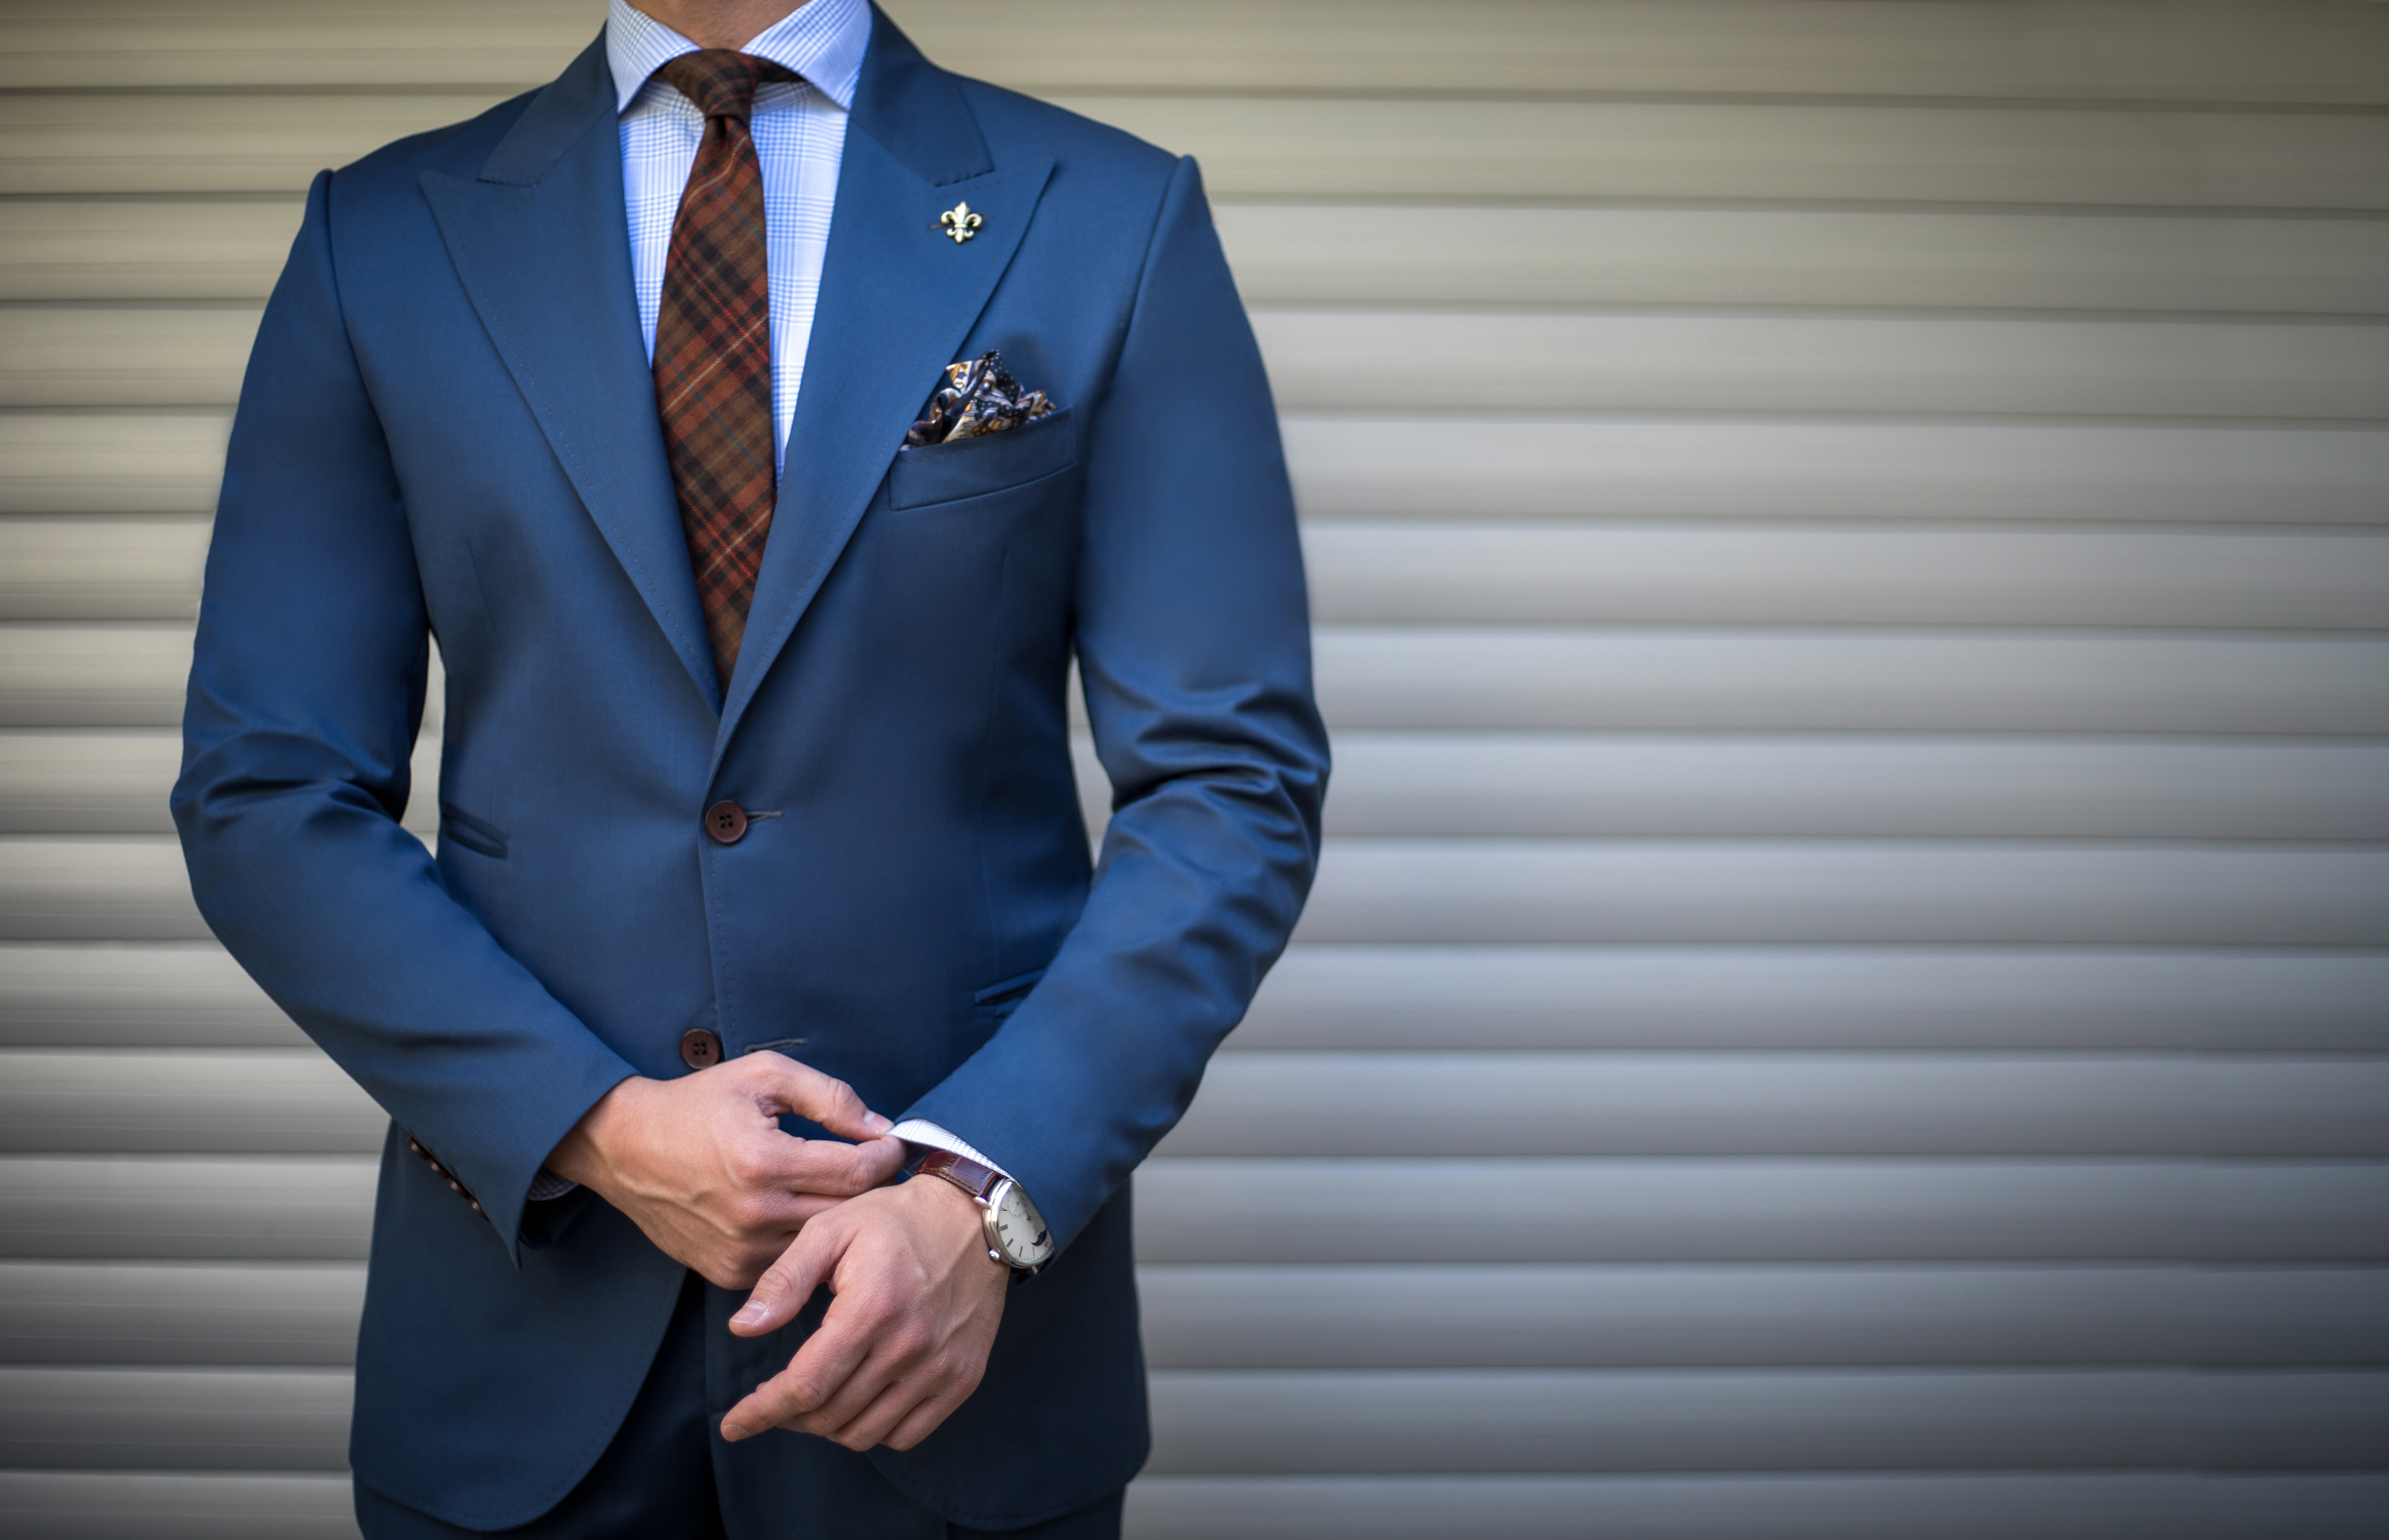 Male model in tailored suit posing outdoors and fixing his cufflinks